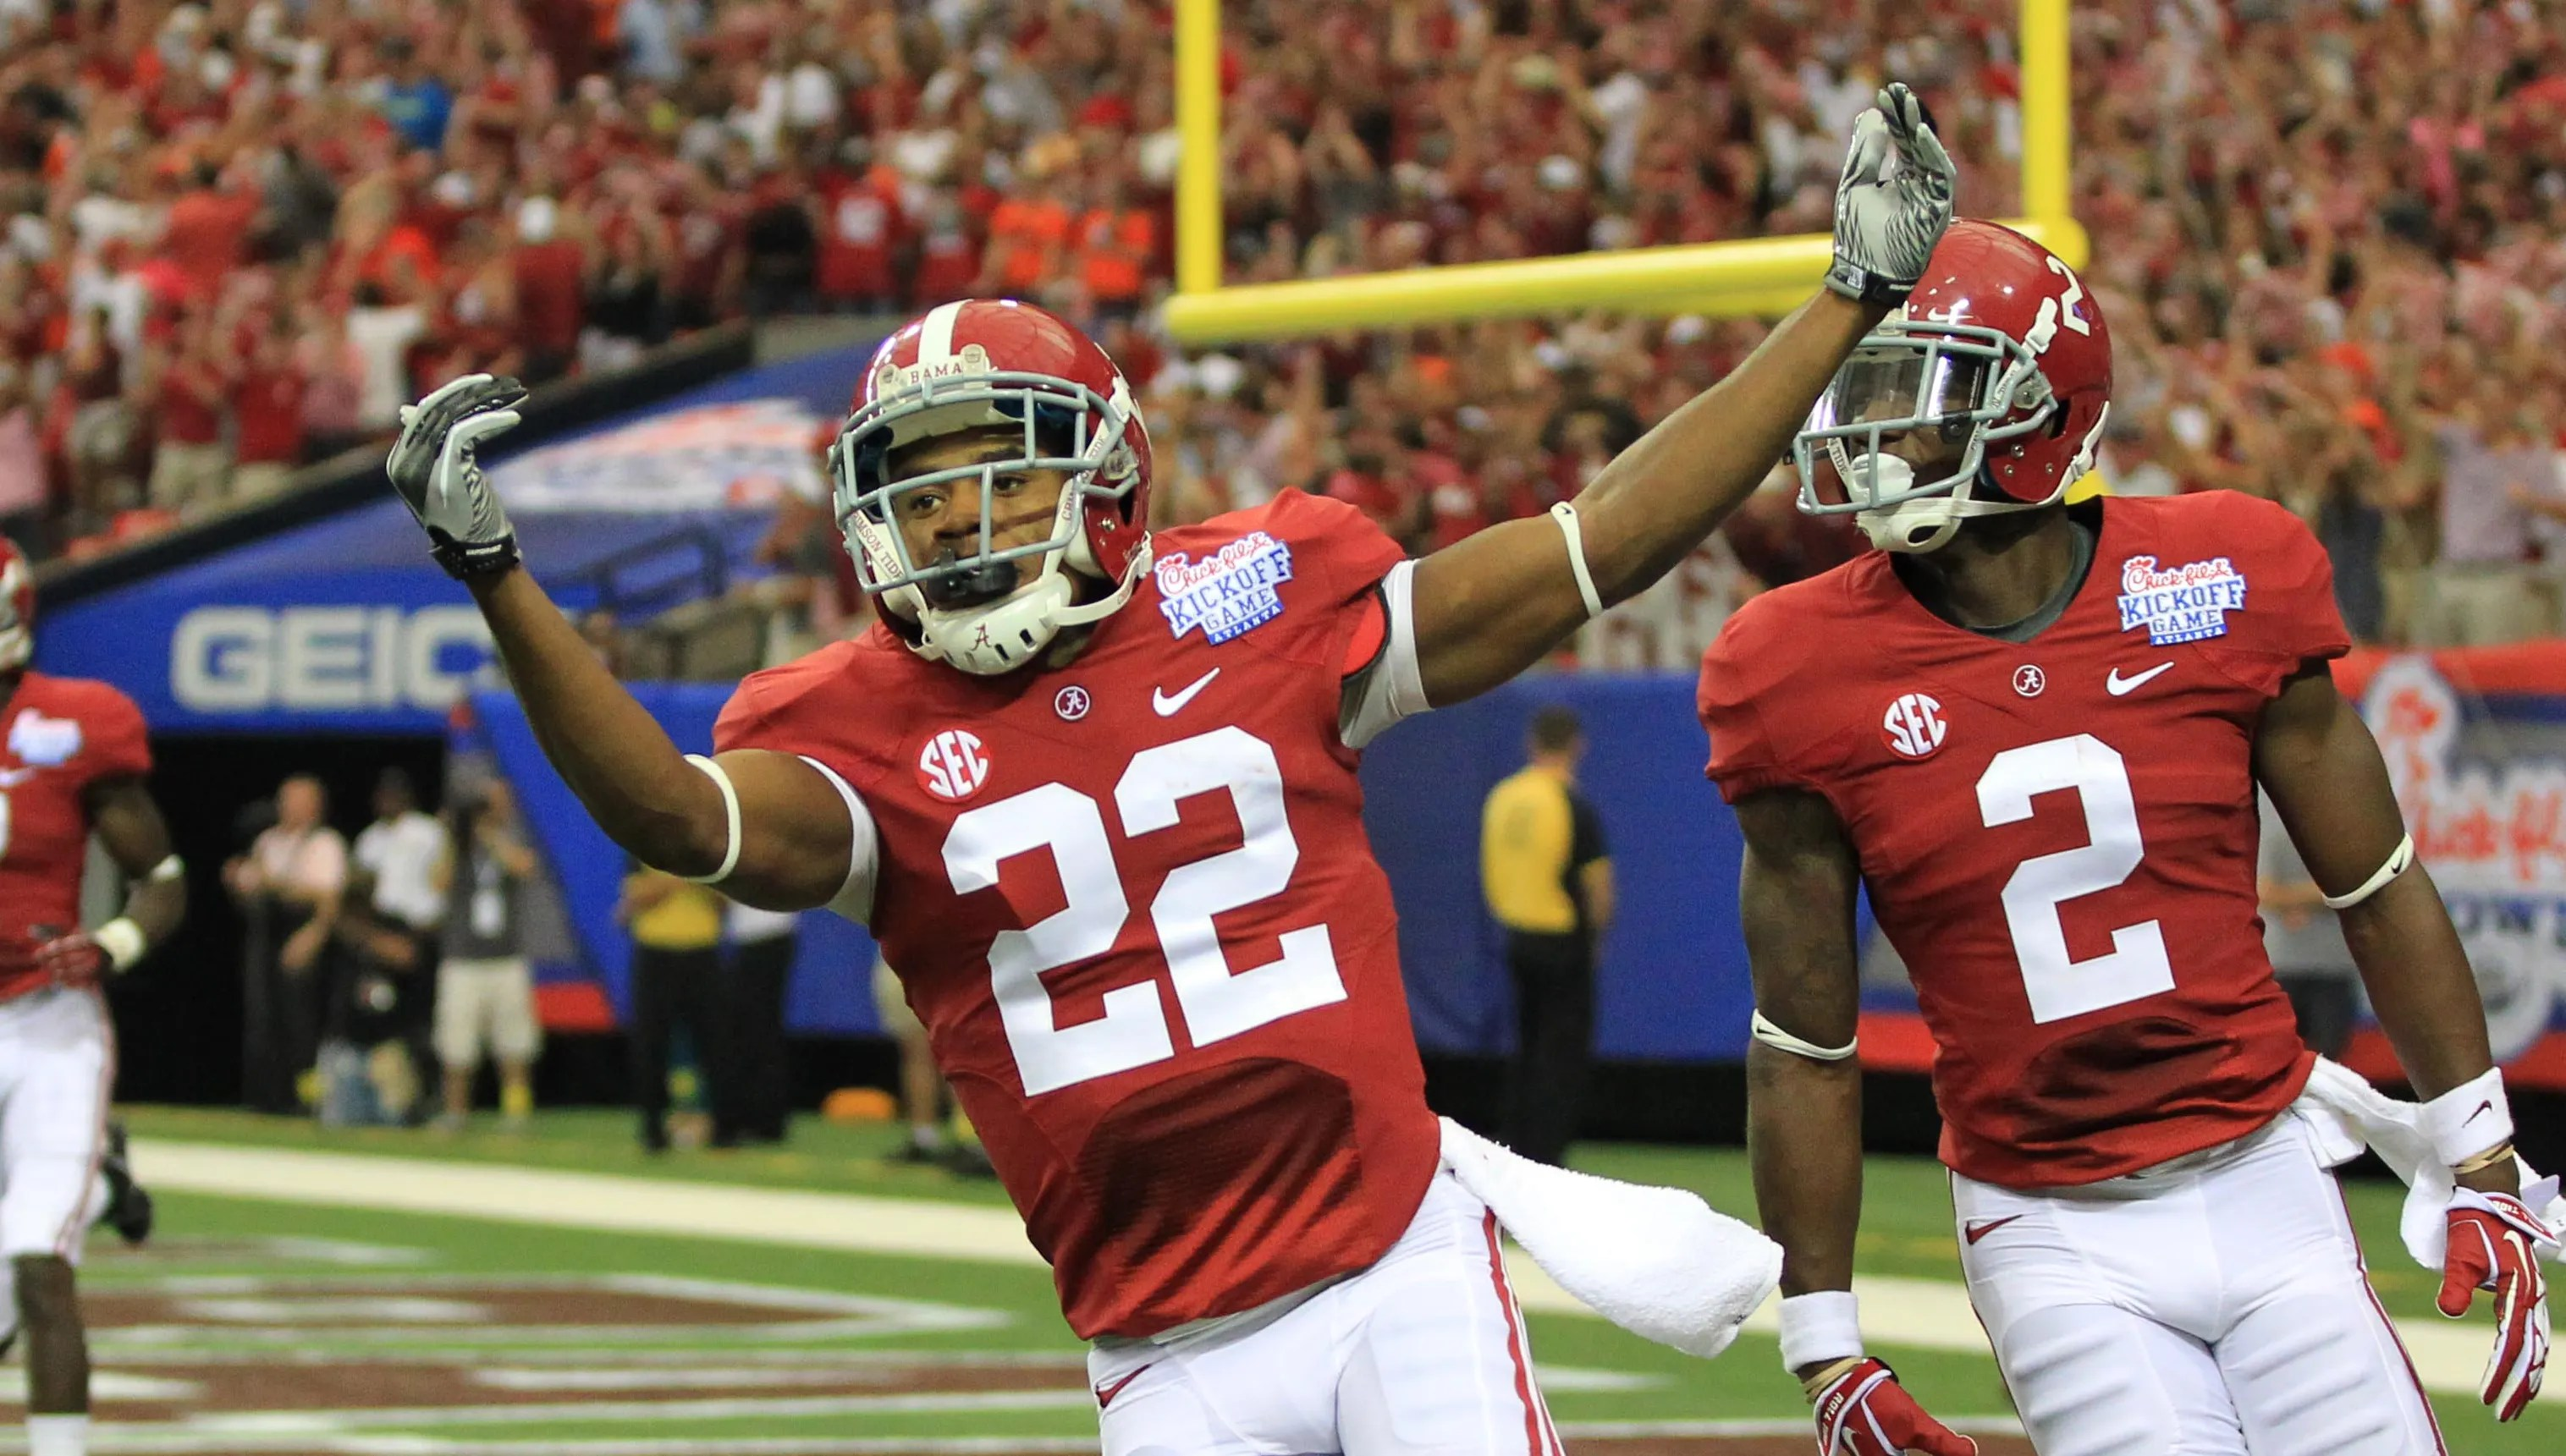 Alabama S Offense Absent But Christion Jones Shows Up